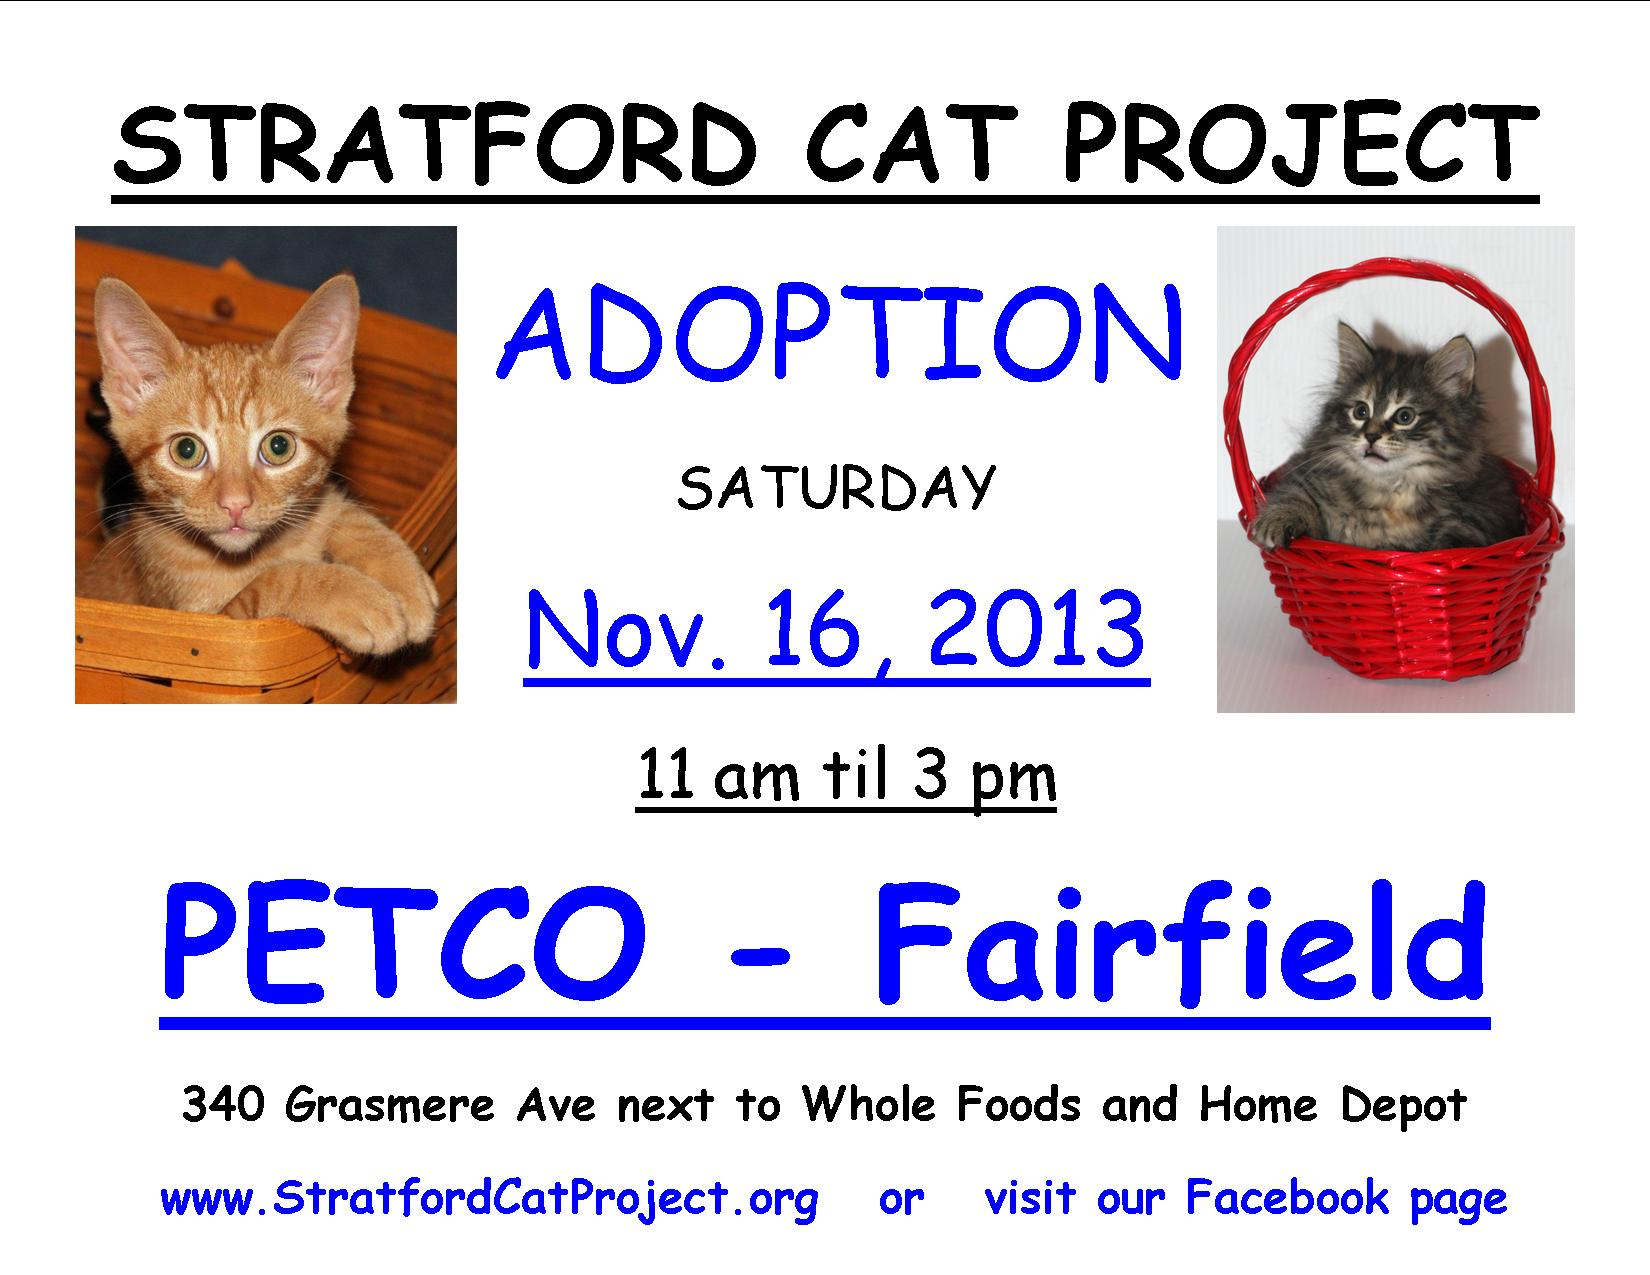 Stratford Cat Project Cat Kitten Adoption At Fairfield Petco Fairfield Ct Patch